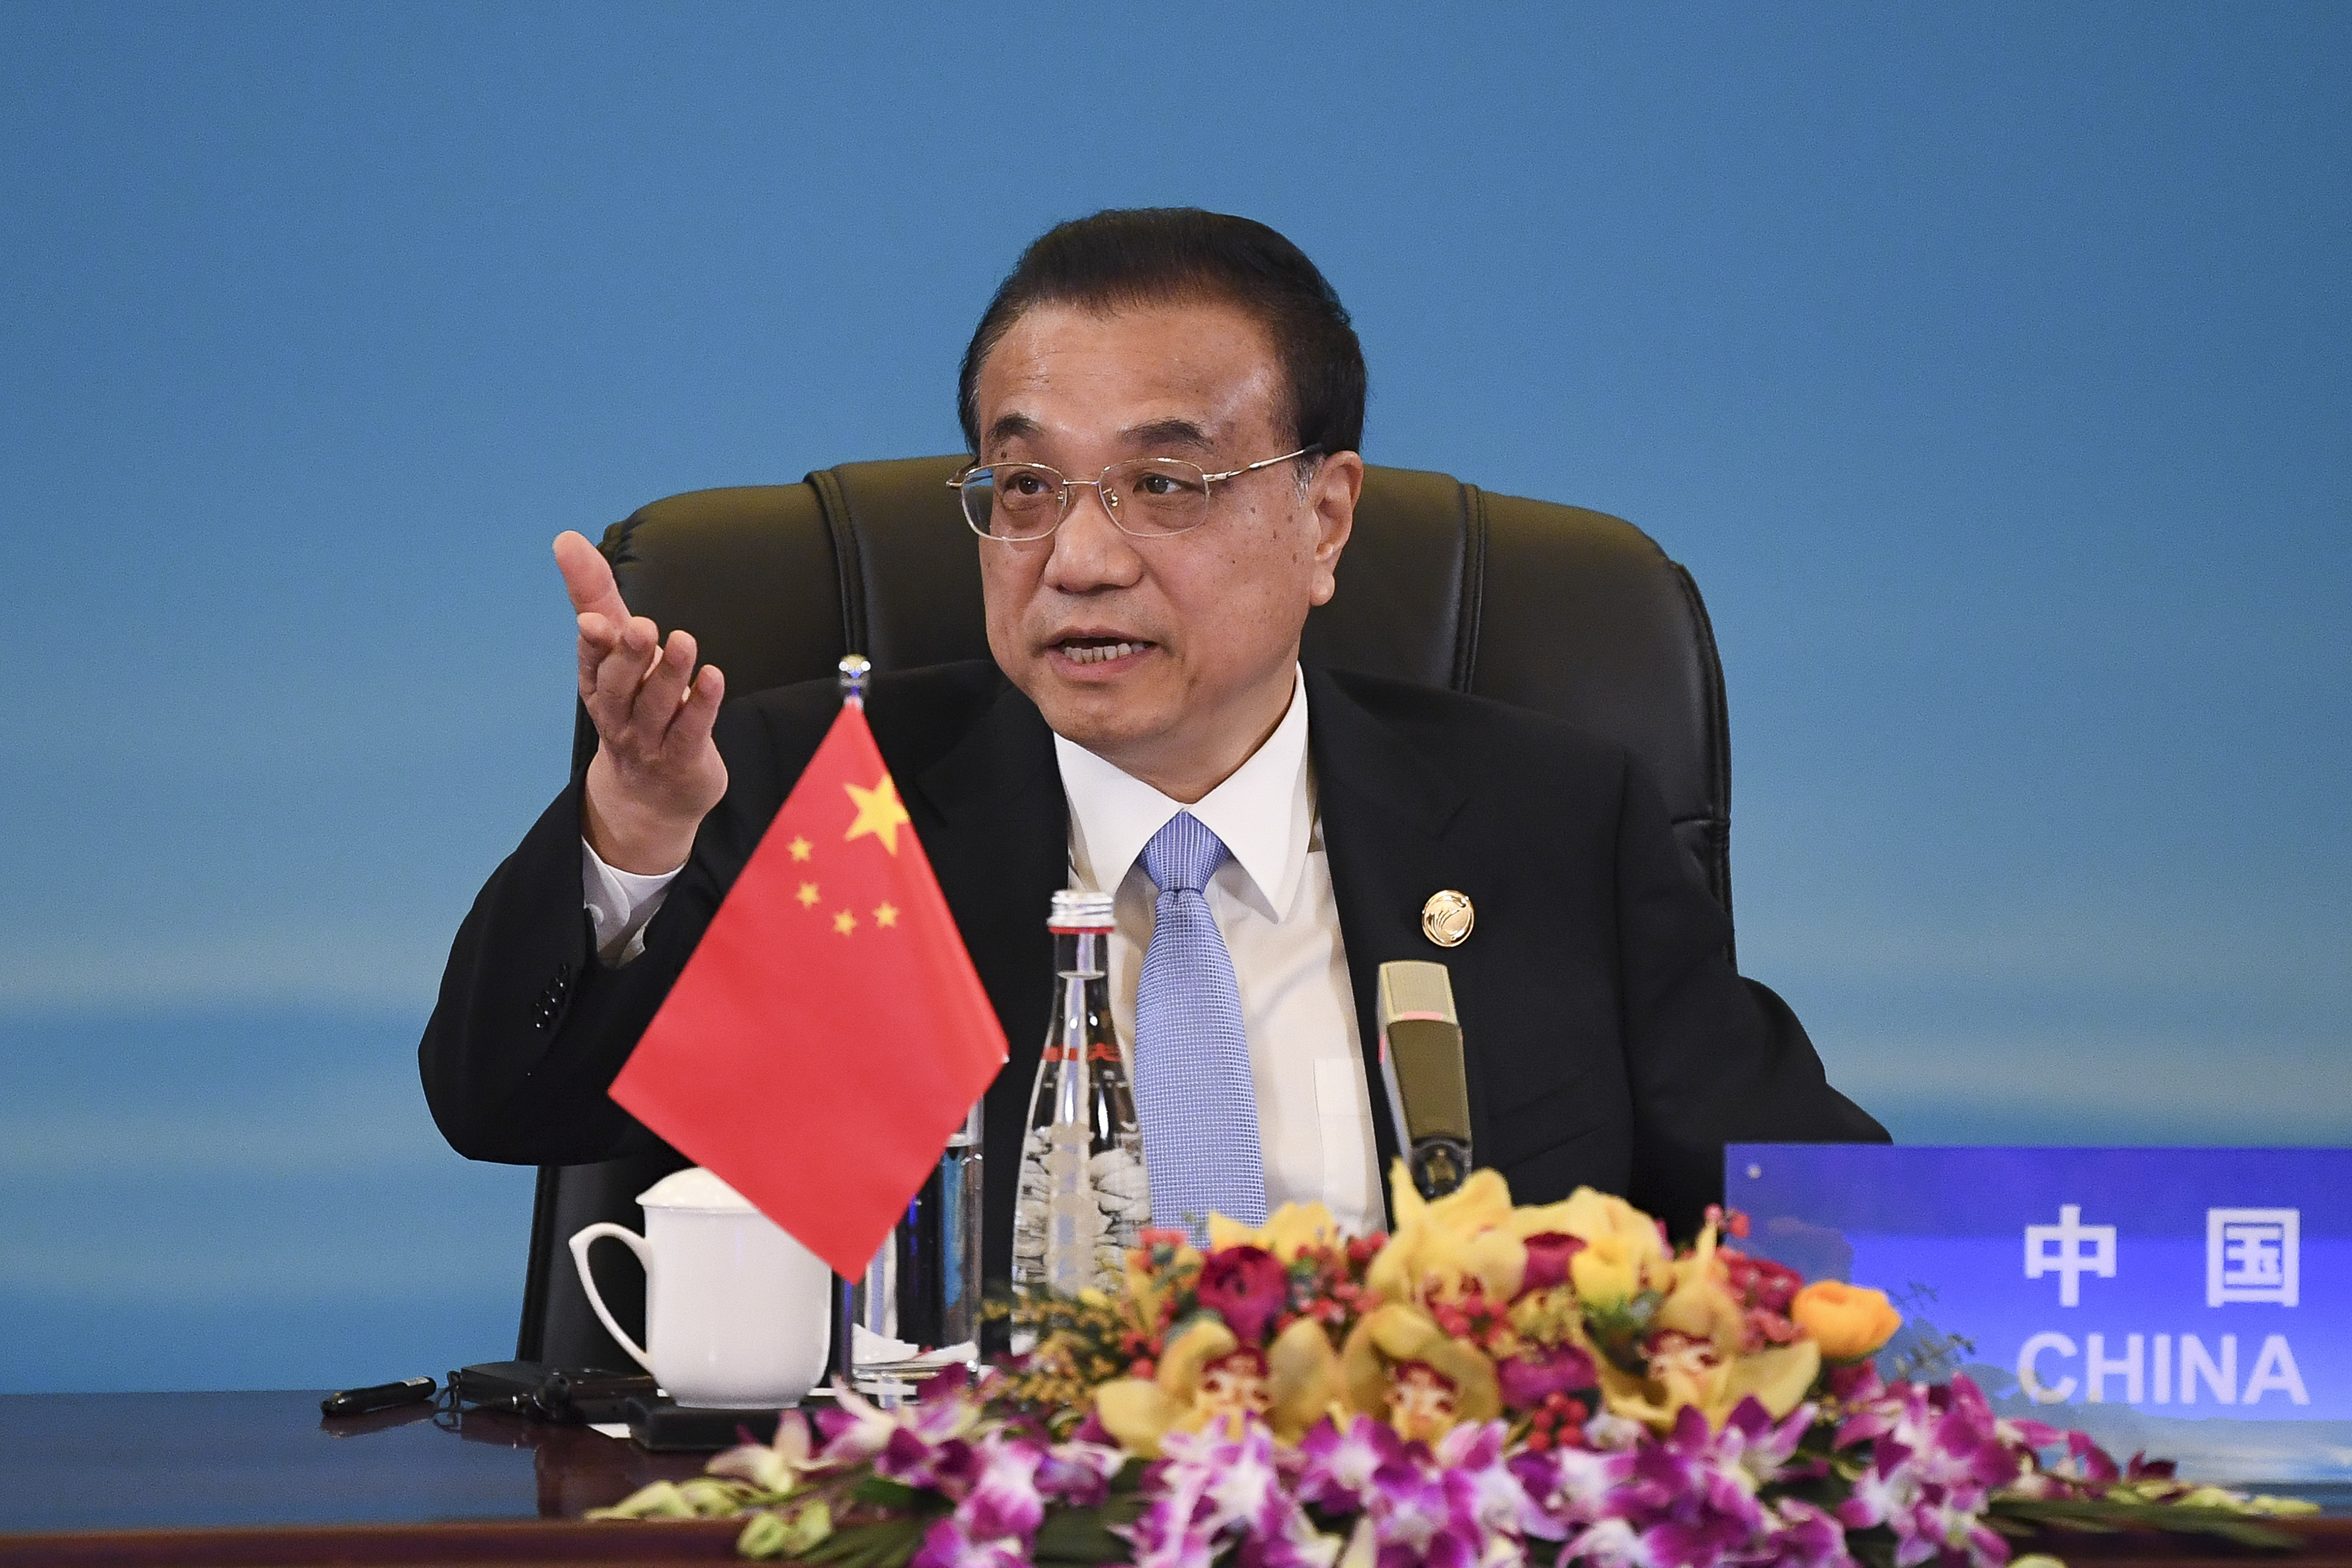 China's Premier Li Keqiang speaks at the trilateral leaders' meeting between China, South Korea and Japan in Chengdu, China's Sichuan province on Dec. 24, 2019.